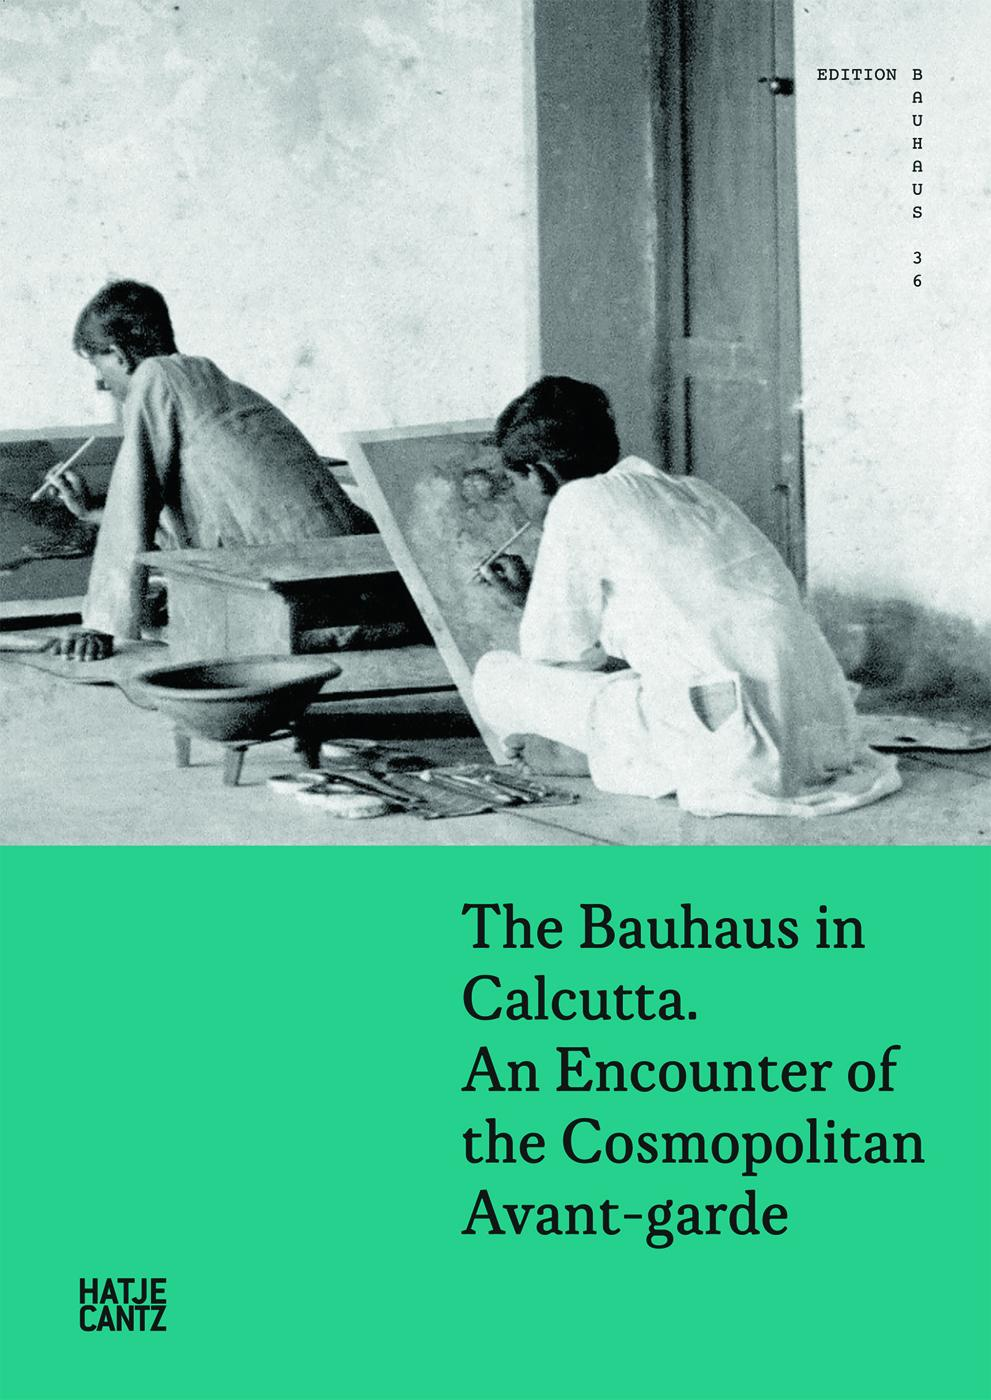 The Bauhaus in Calcutta - Book at Kavi Gupta Editions